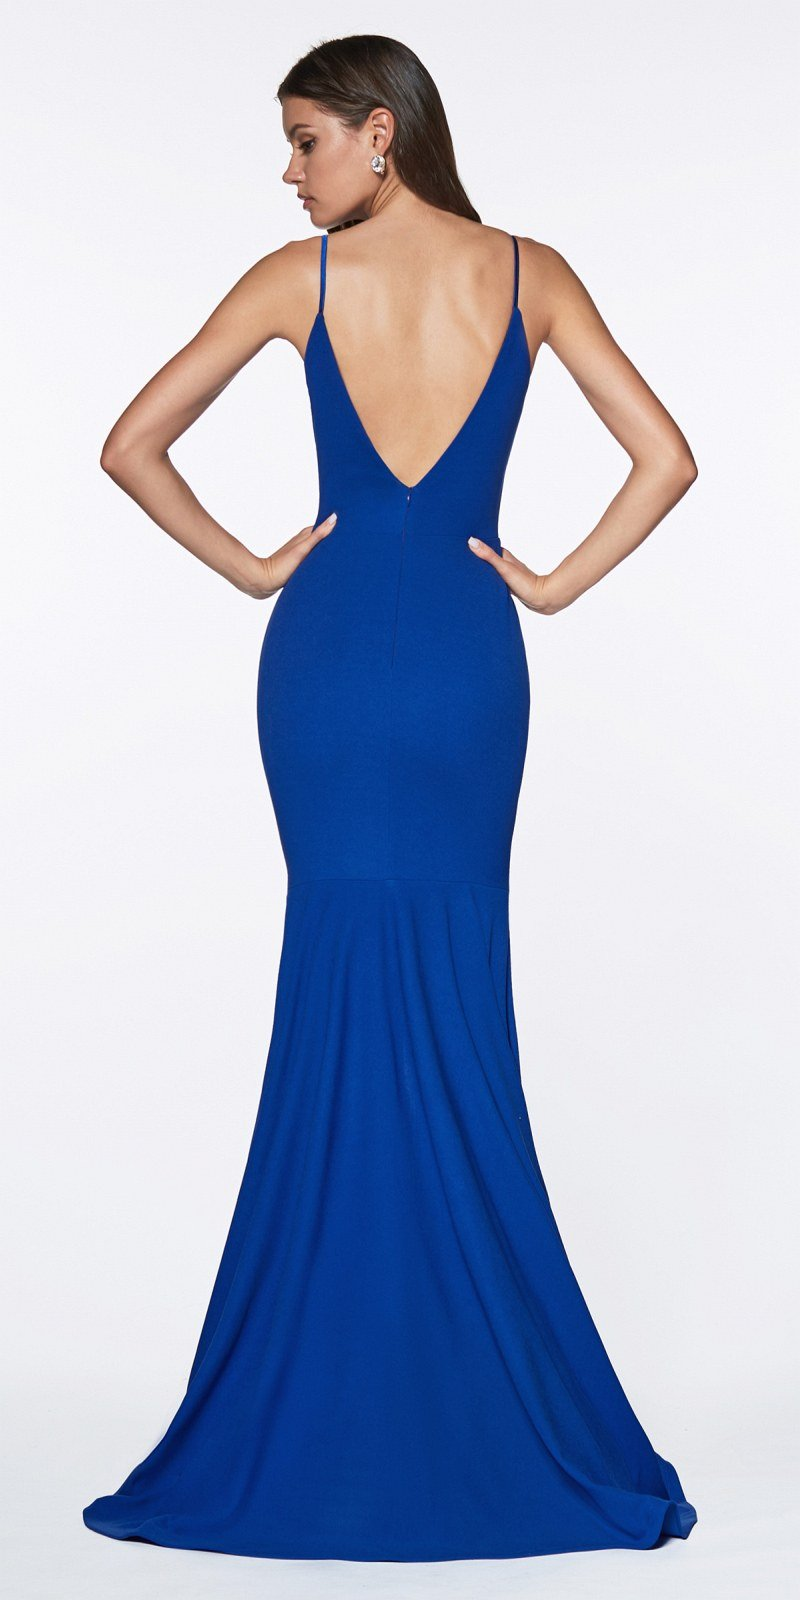 ... Cinderella Divine CF329 Long Fitted Ruched Mermaid Dress Royal Blue  Deep Plunging Neckline ... f1cebc383